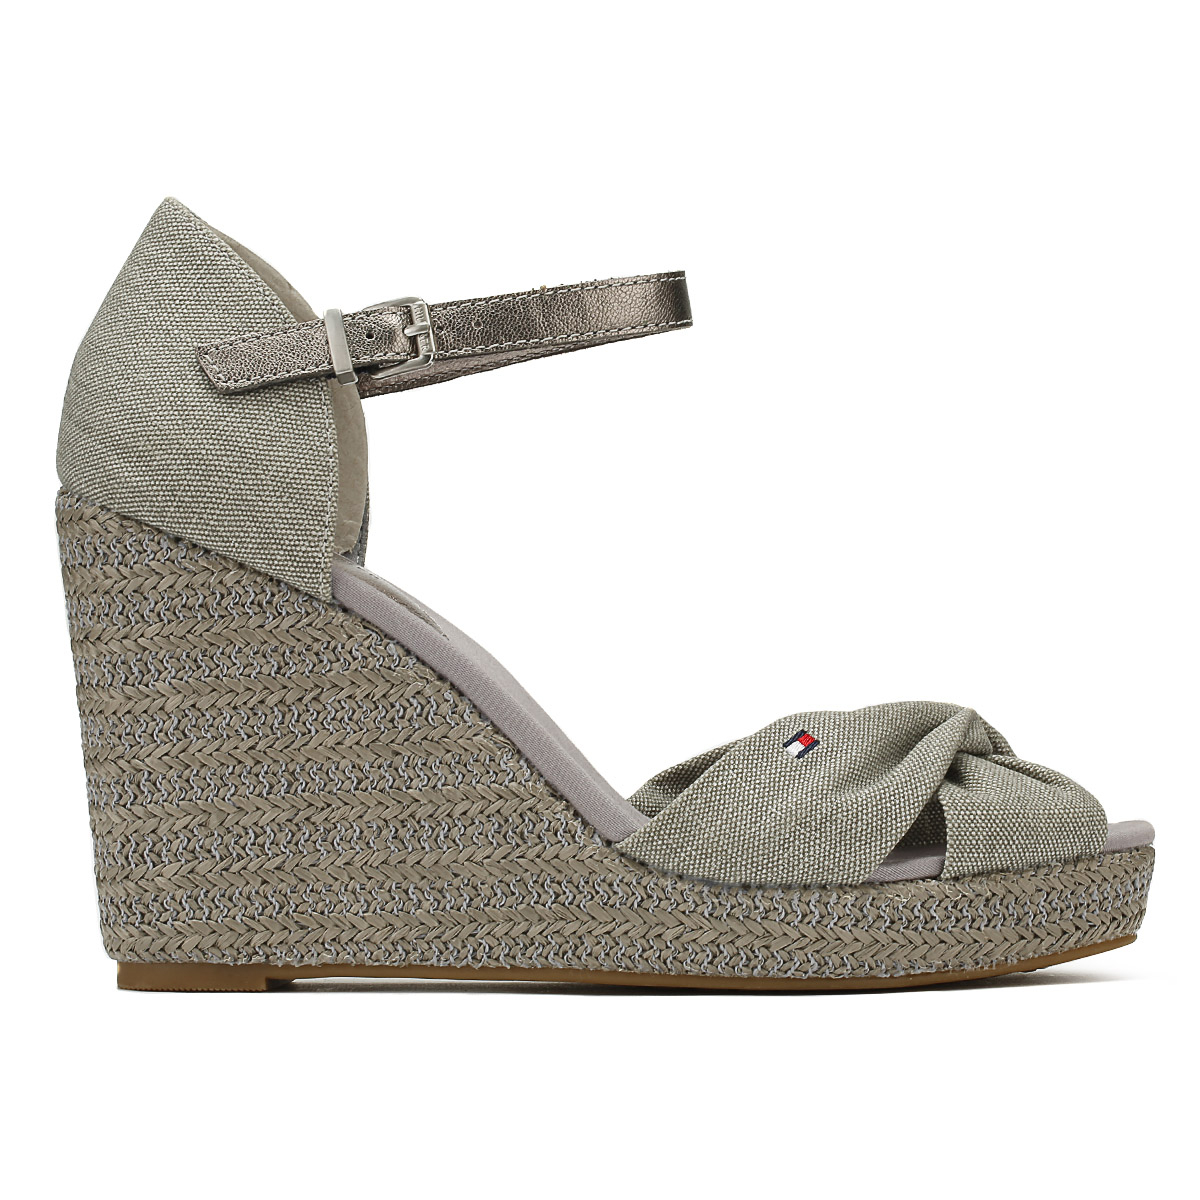 0e29f8822f7 Complete with a Tommy Hilfiger logo situated on the toe strap and  adjustable ankle strap with a silver-toned buckle. • Tonal metallic  materials • TPR ...